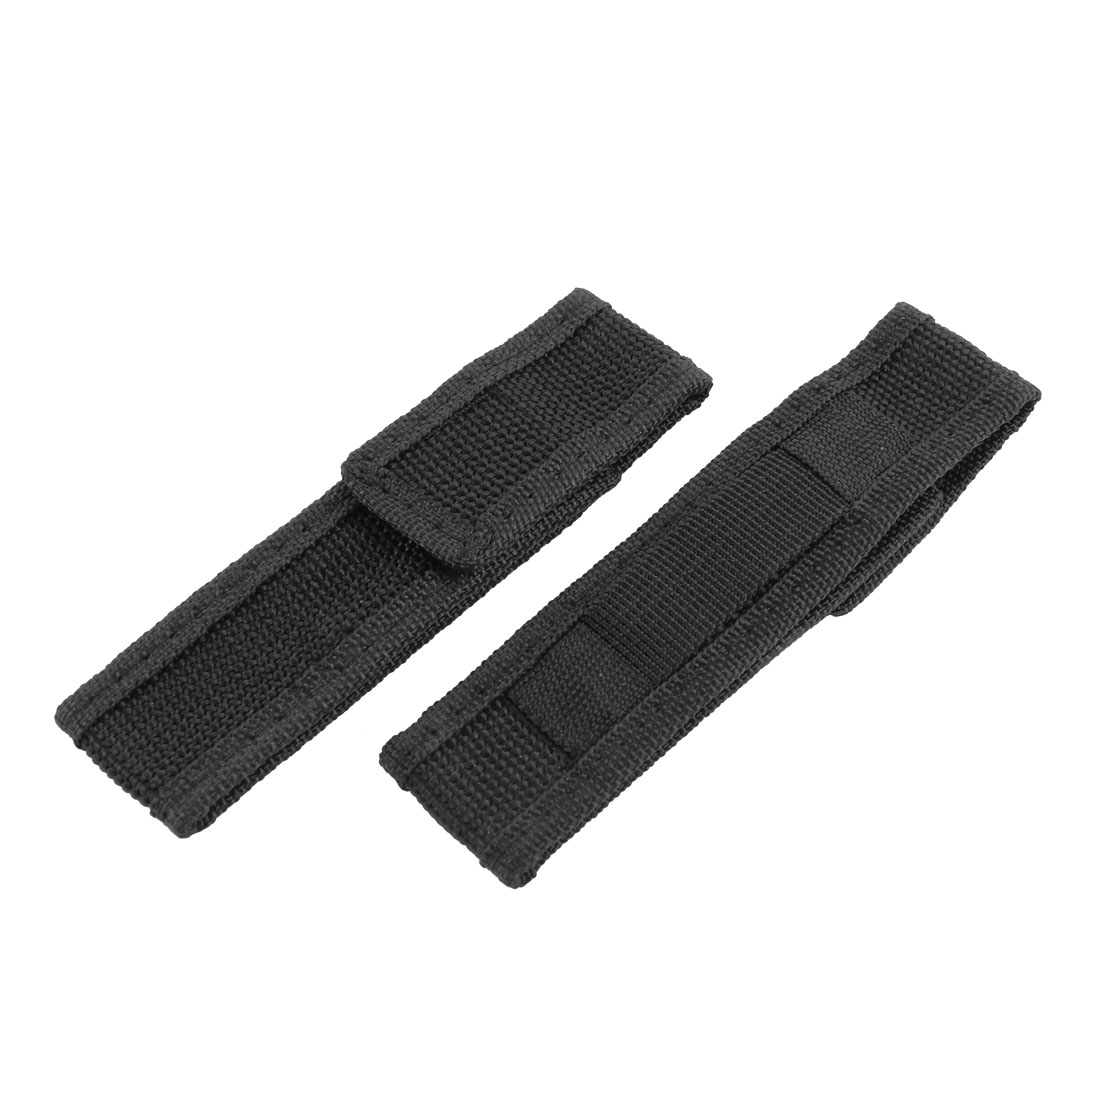 2PCS Camping Black Nylon Hook Loop Fastener Closure Flashlight Pouch Bag Case